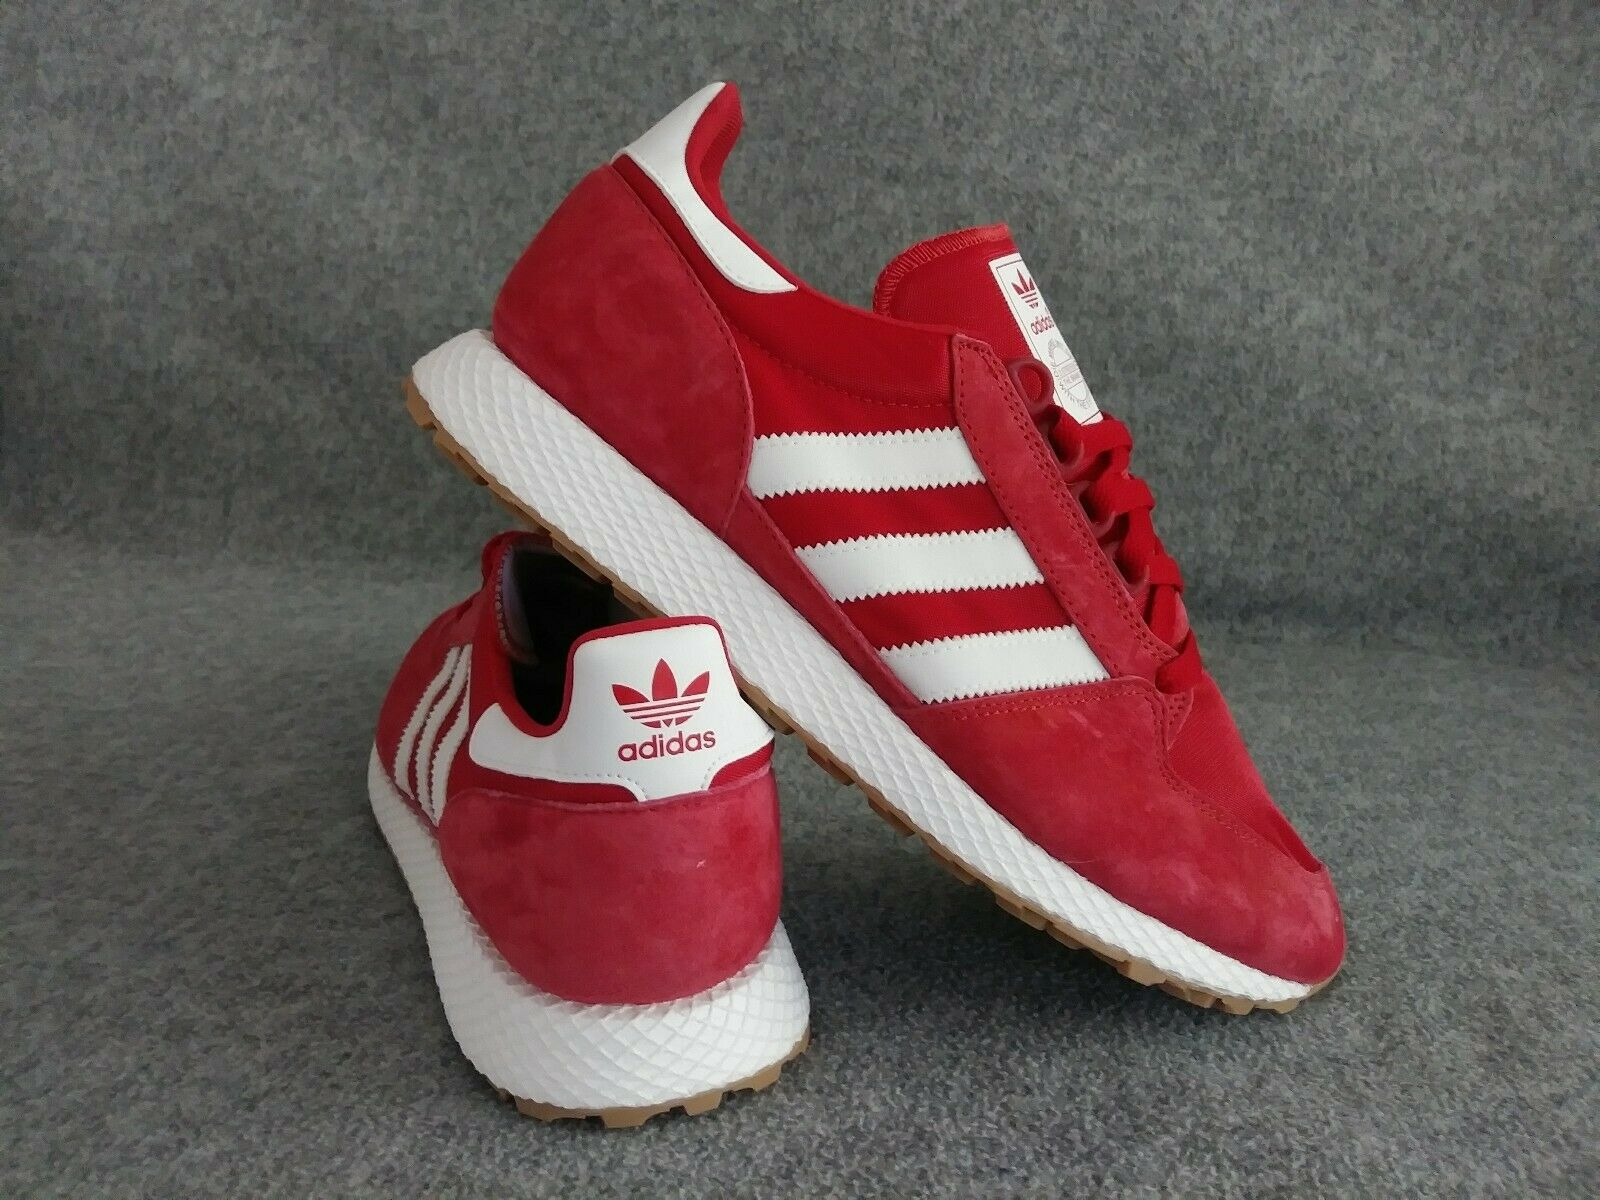 NEW Adidas Originals Forest Grove Athletic Lace Up Sneakers Scarlet Red Sz 10